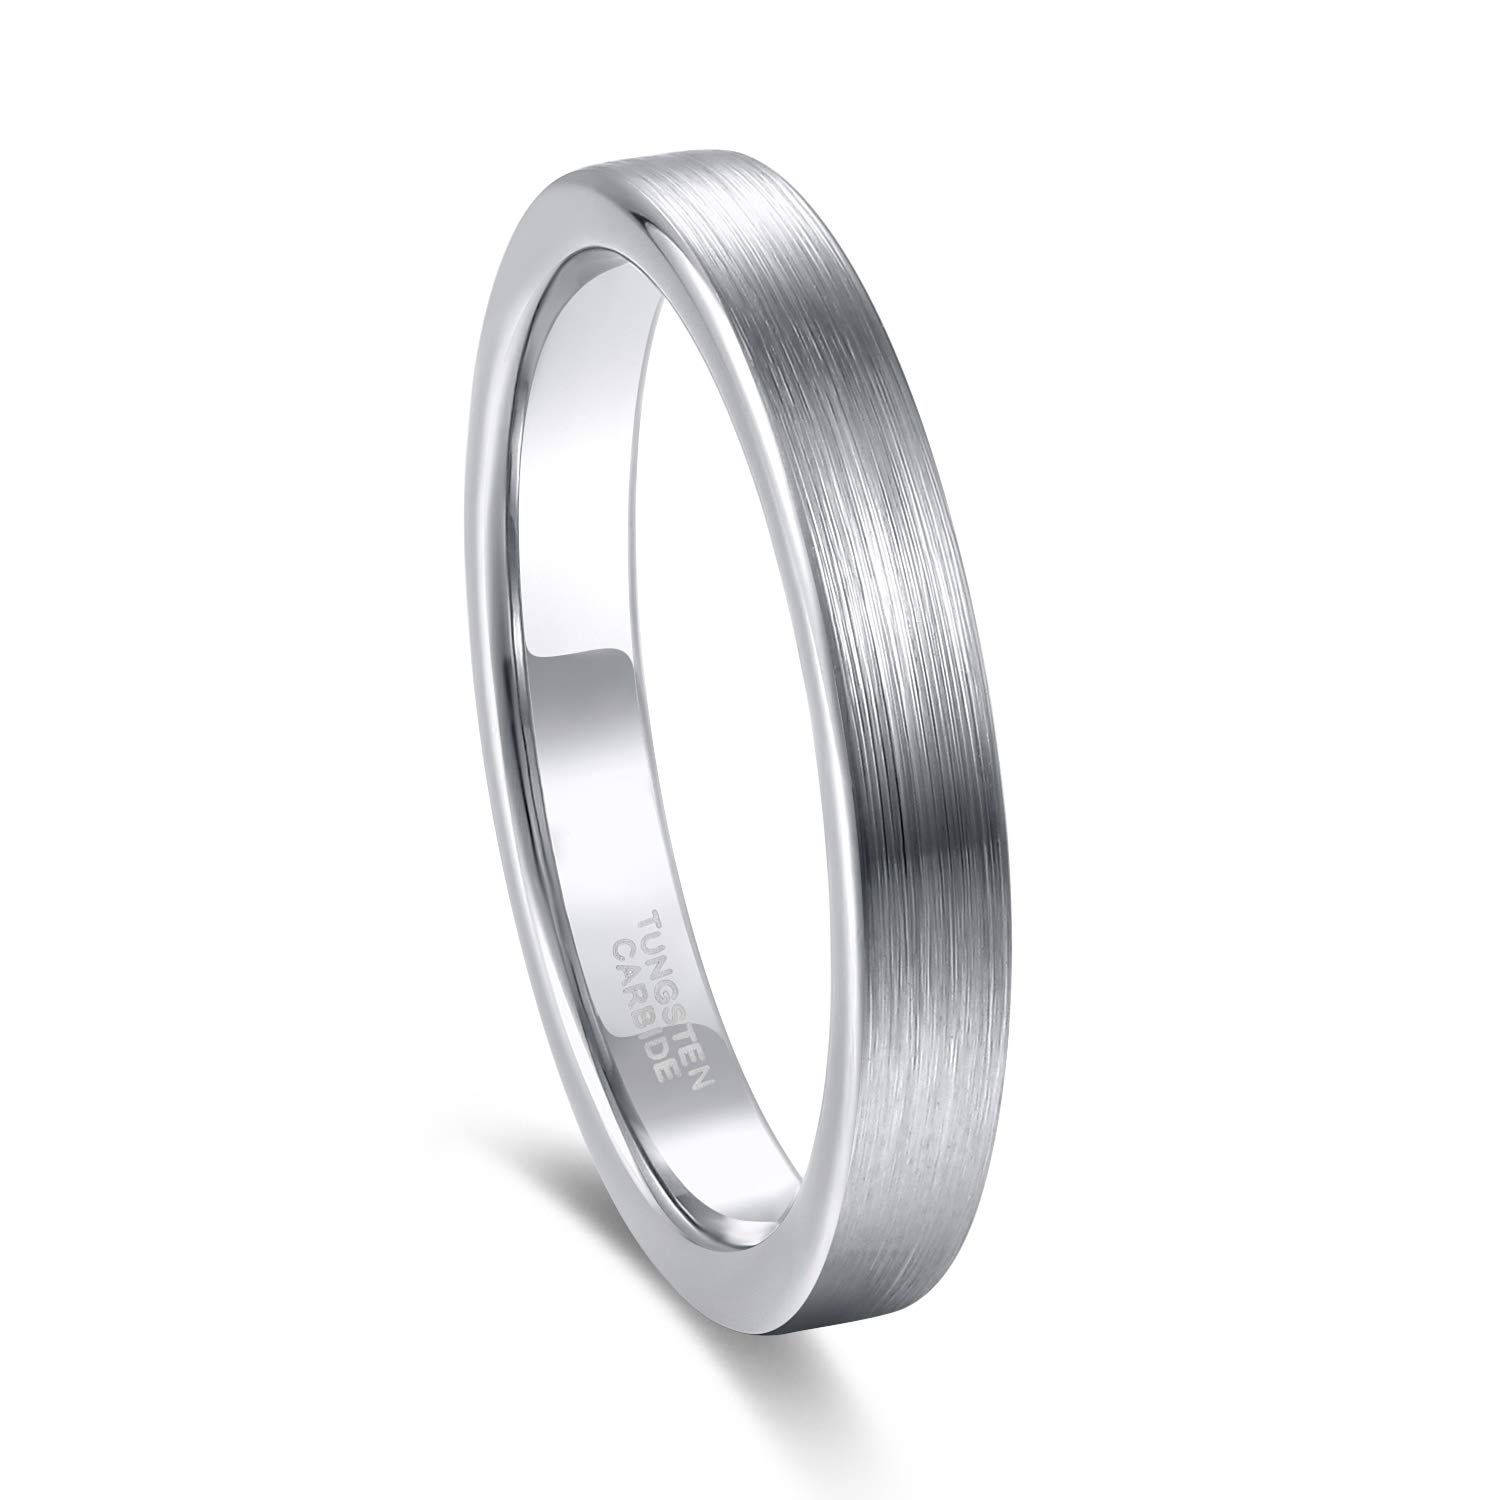 Frank Sburton 3mm 4mm 6mm 8mm Tungsten Ring For Men Women Beveled Edge Matte Silver Wedding Band Fort Fit Size 414 Amazon: Beveled Edge Matte Wedding Ring At Reisefeber.org